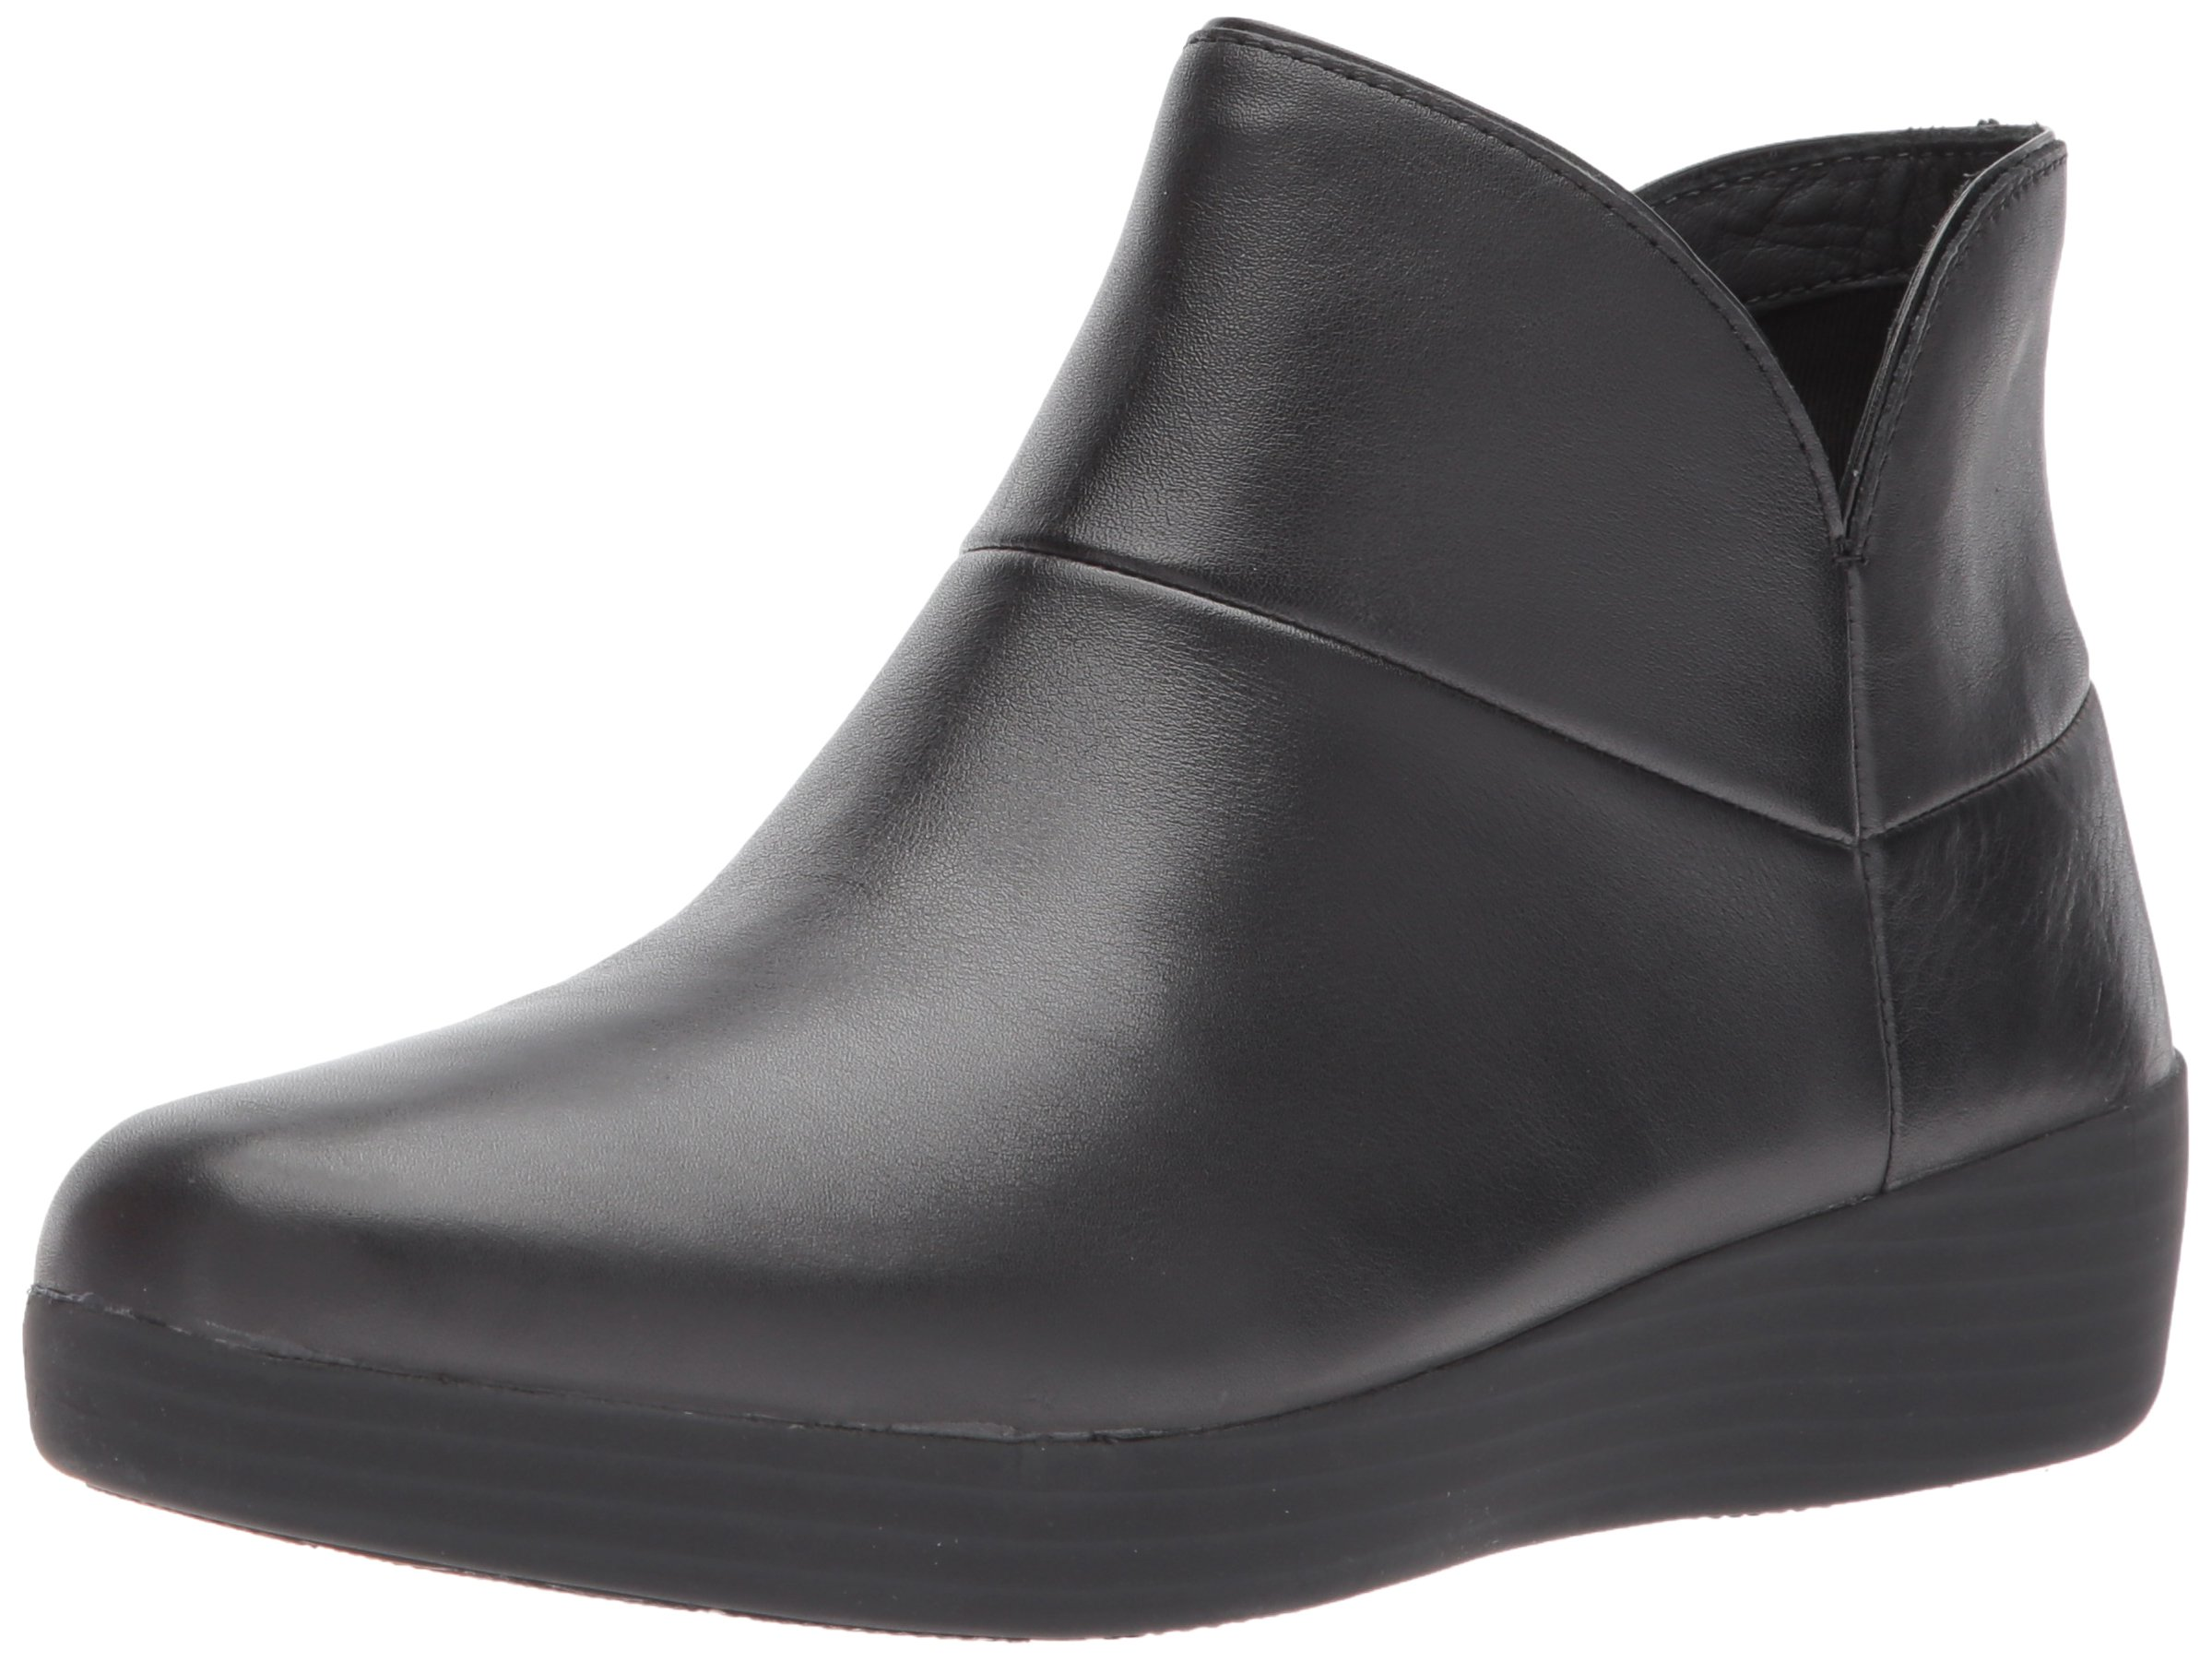 FitFlop Women's Supermod II Leather Ankle Boot, All Black, 11 M US by FitFlop (Image #1)